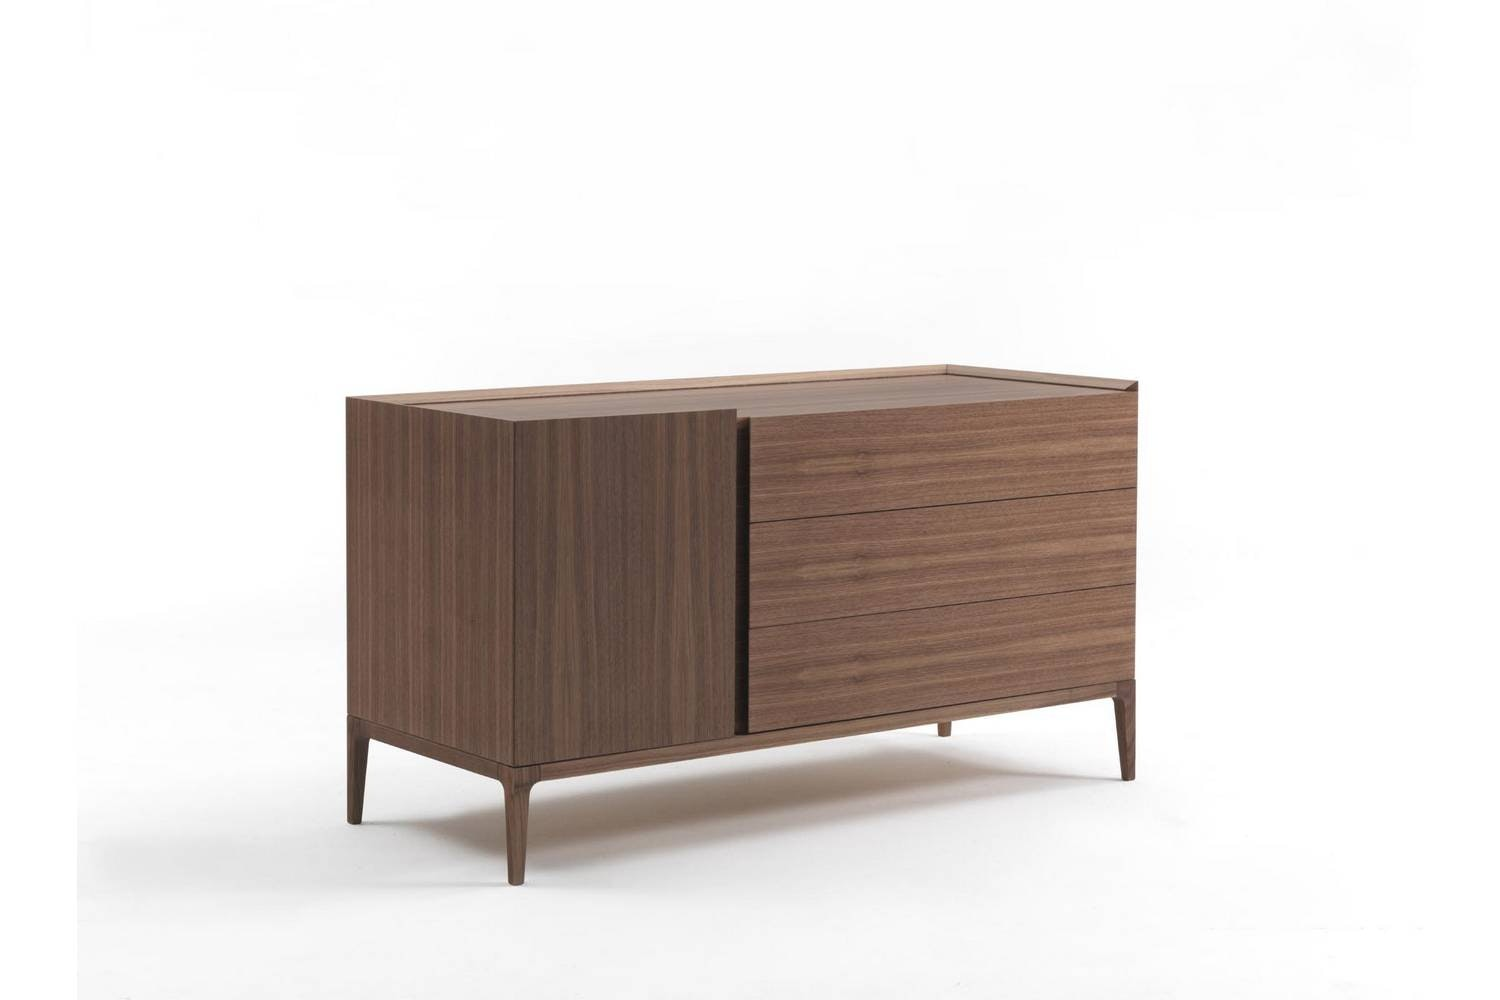 Oslo Chest of Drawers by M. Marconato - T. Zappa for Porada